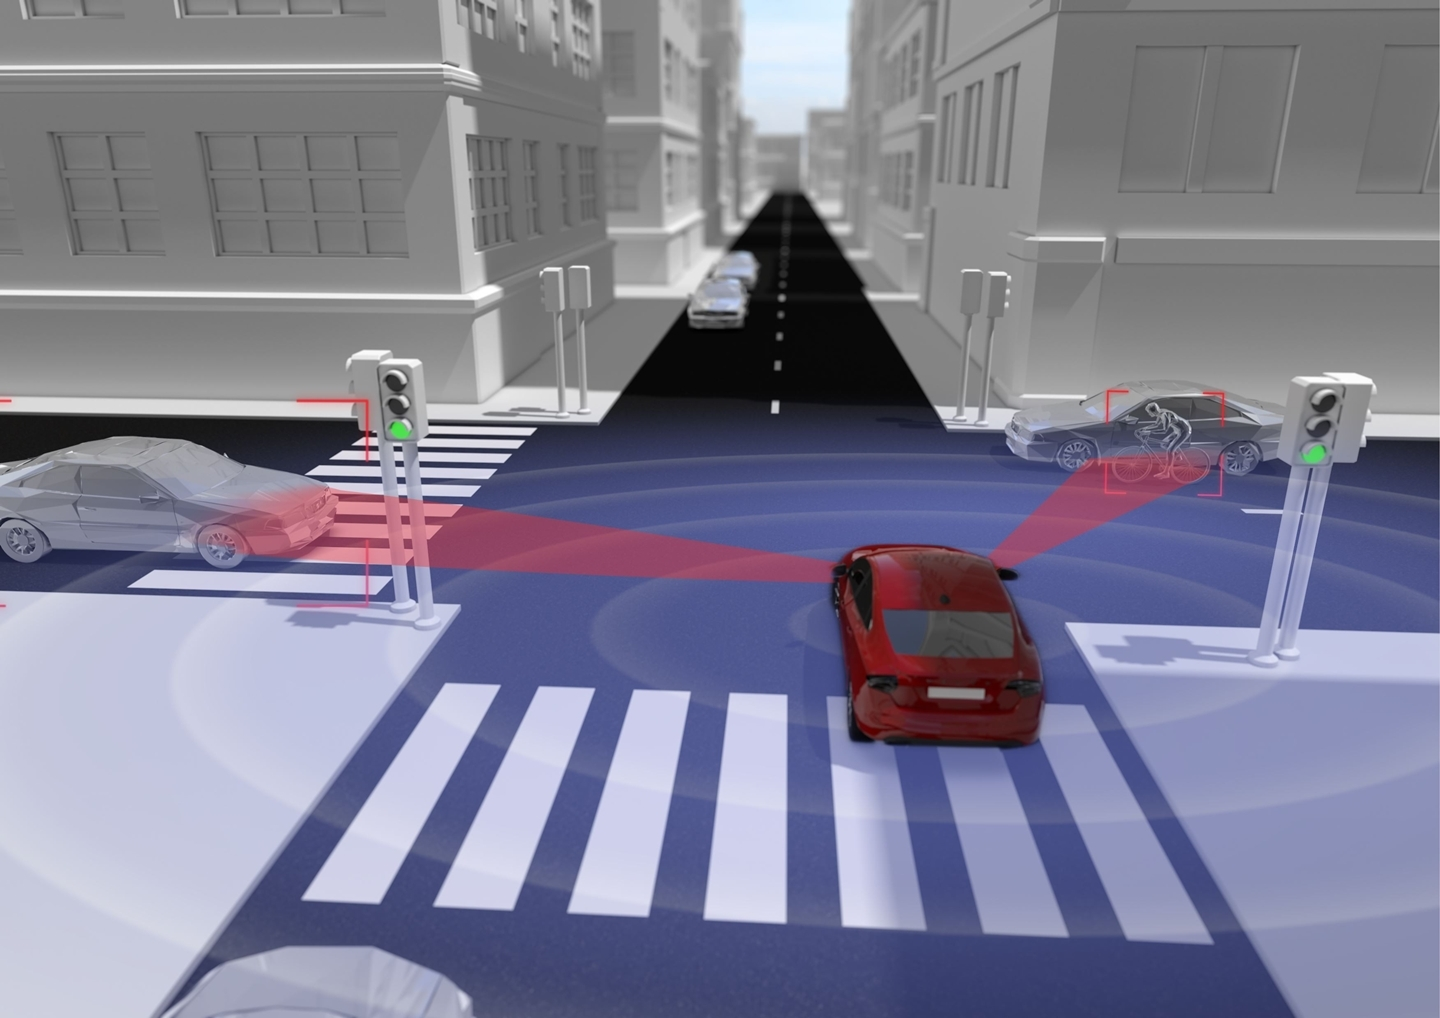 360°-view technology key to Volvo Cars? goal of no fatal accidents by 2020